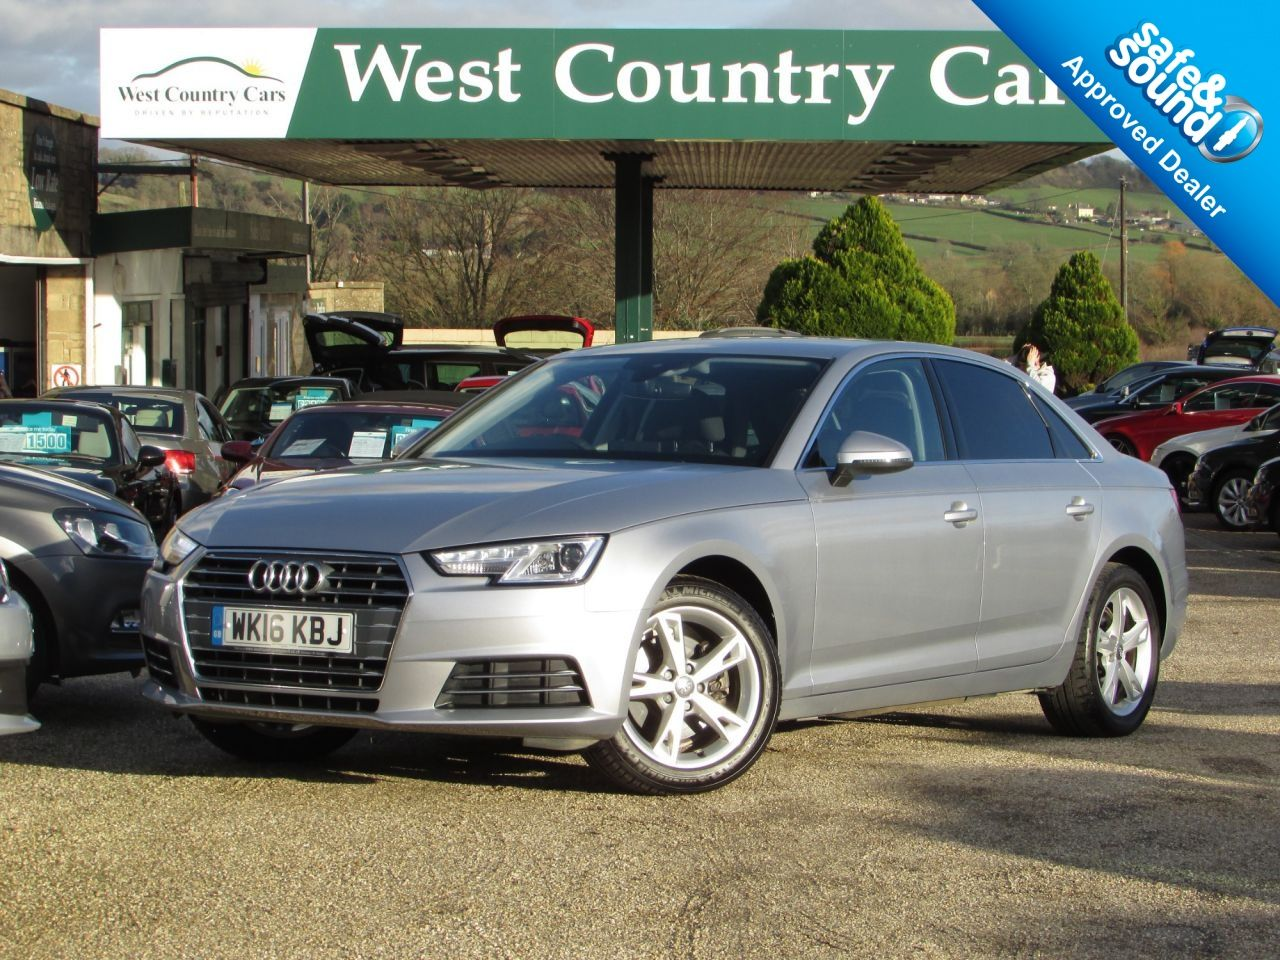 Used AUDI Cars For Sale In Yeovil Somerset - Audi car made in which country